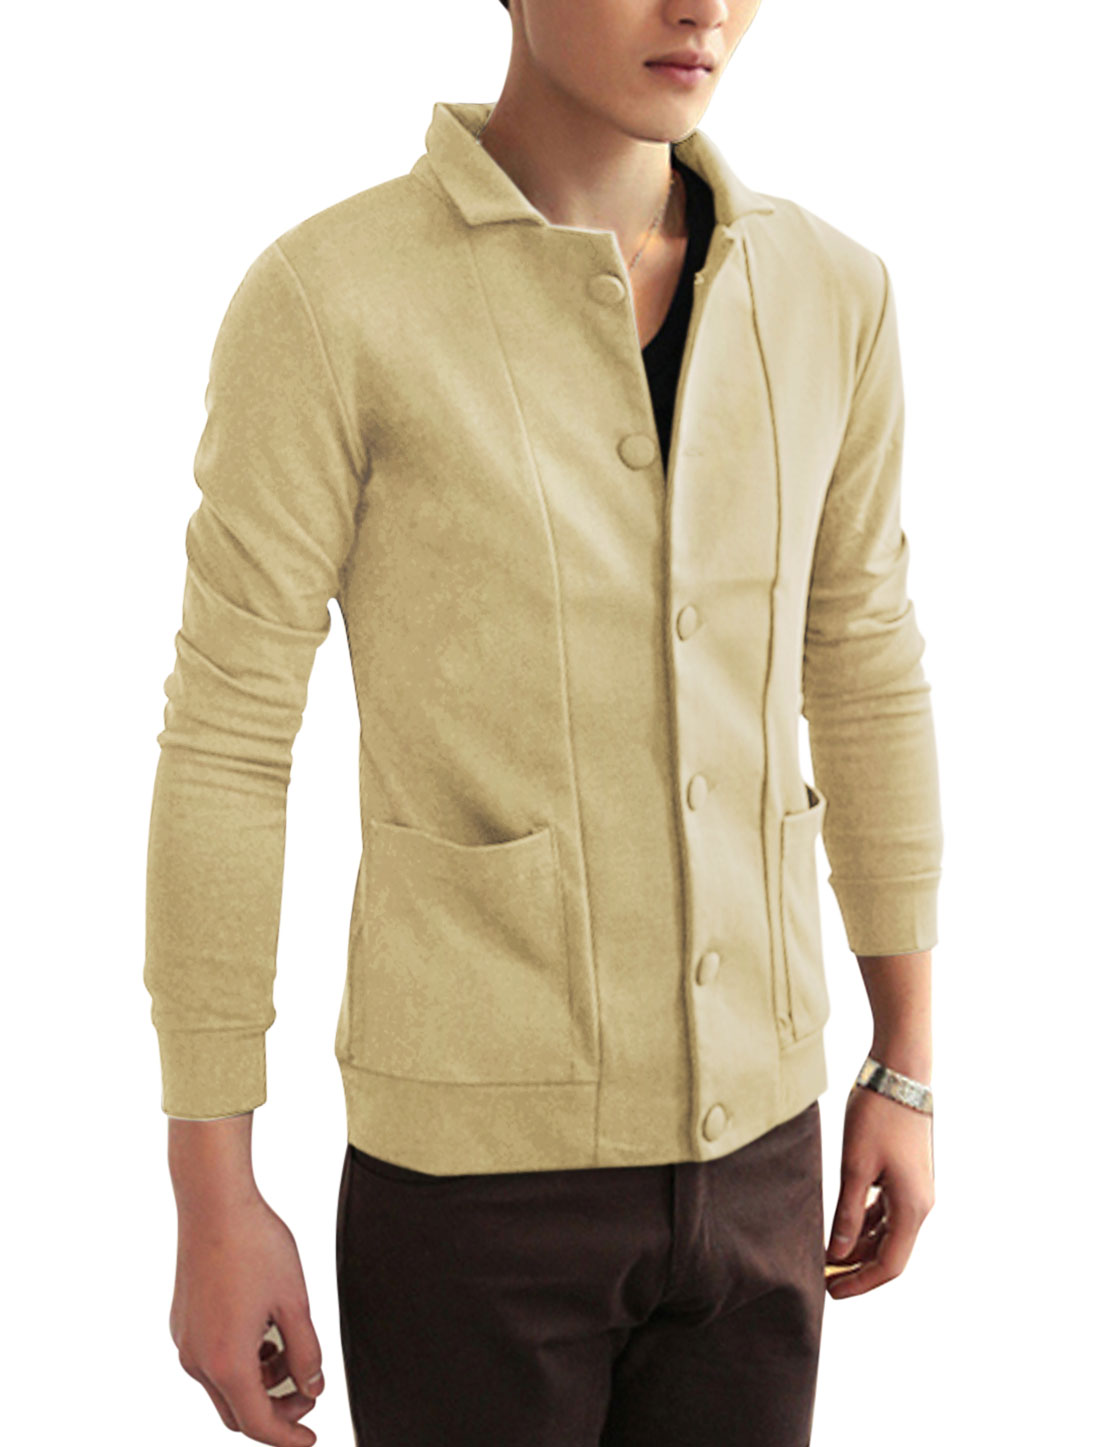 Men Long Sleeve Single Breasted Leisure Jacket Beige M